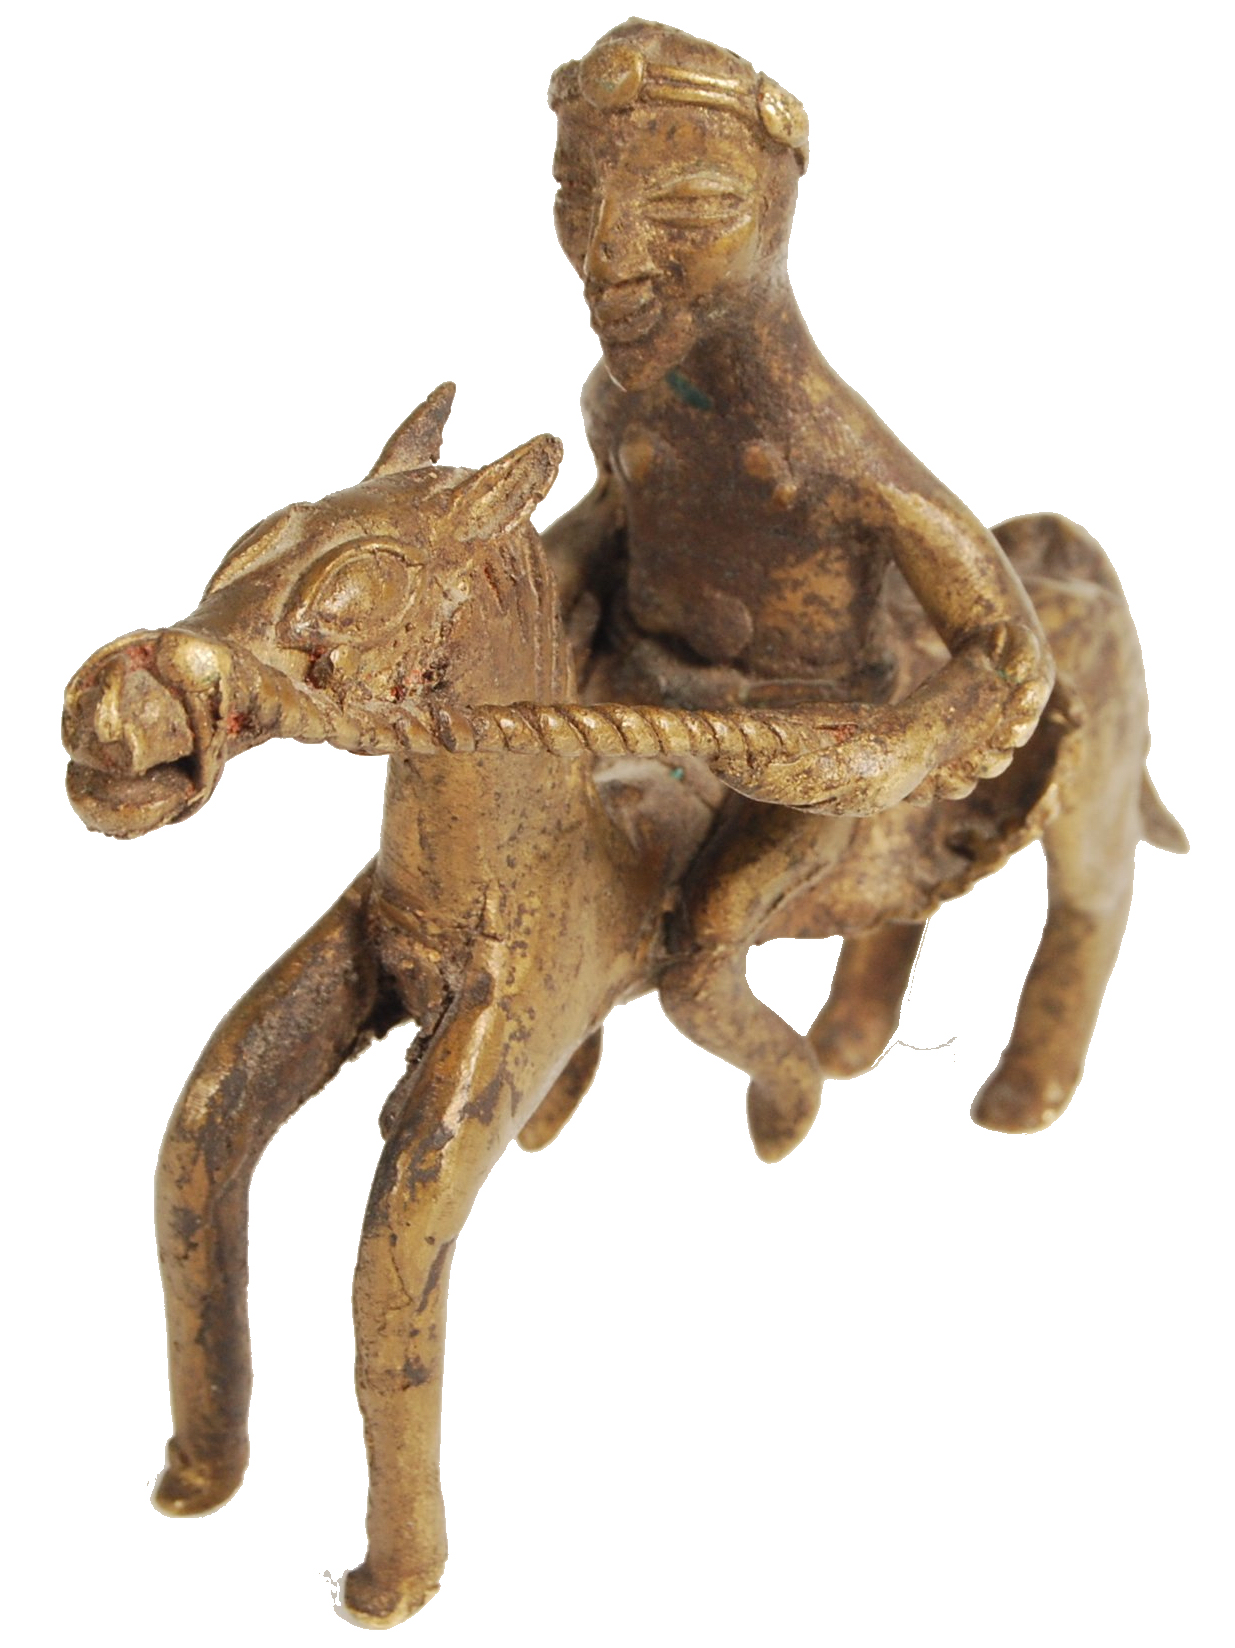 Lot 409 - EARLY 20TH CNETURY BRONZE AFRICAN ART DOGON WARRIOR ON HORSE